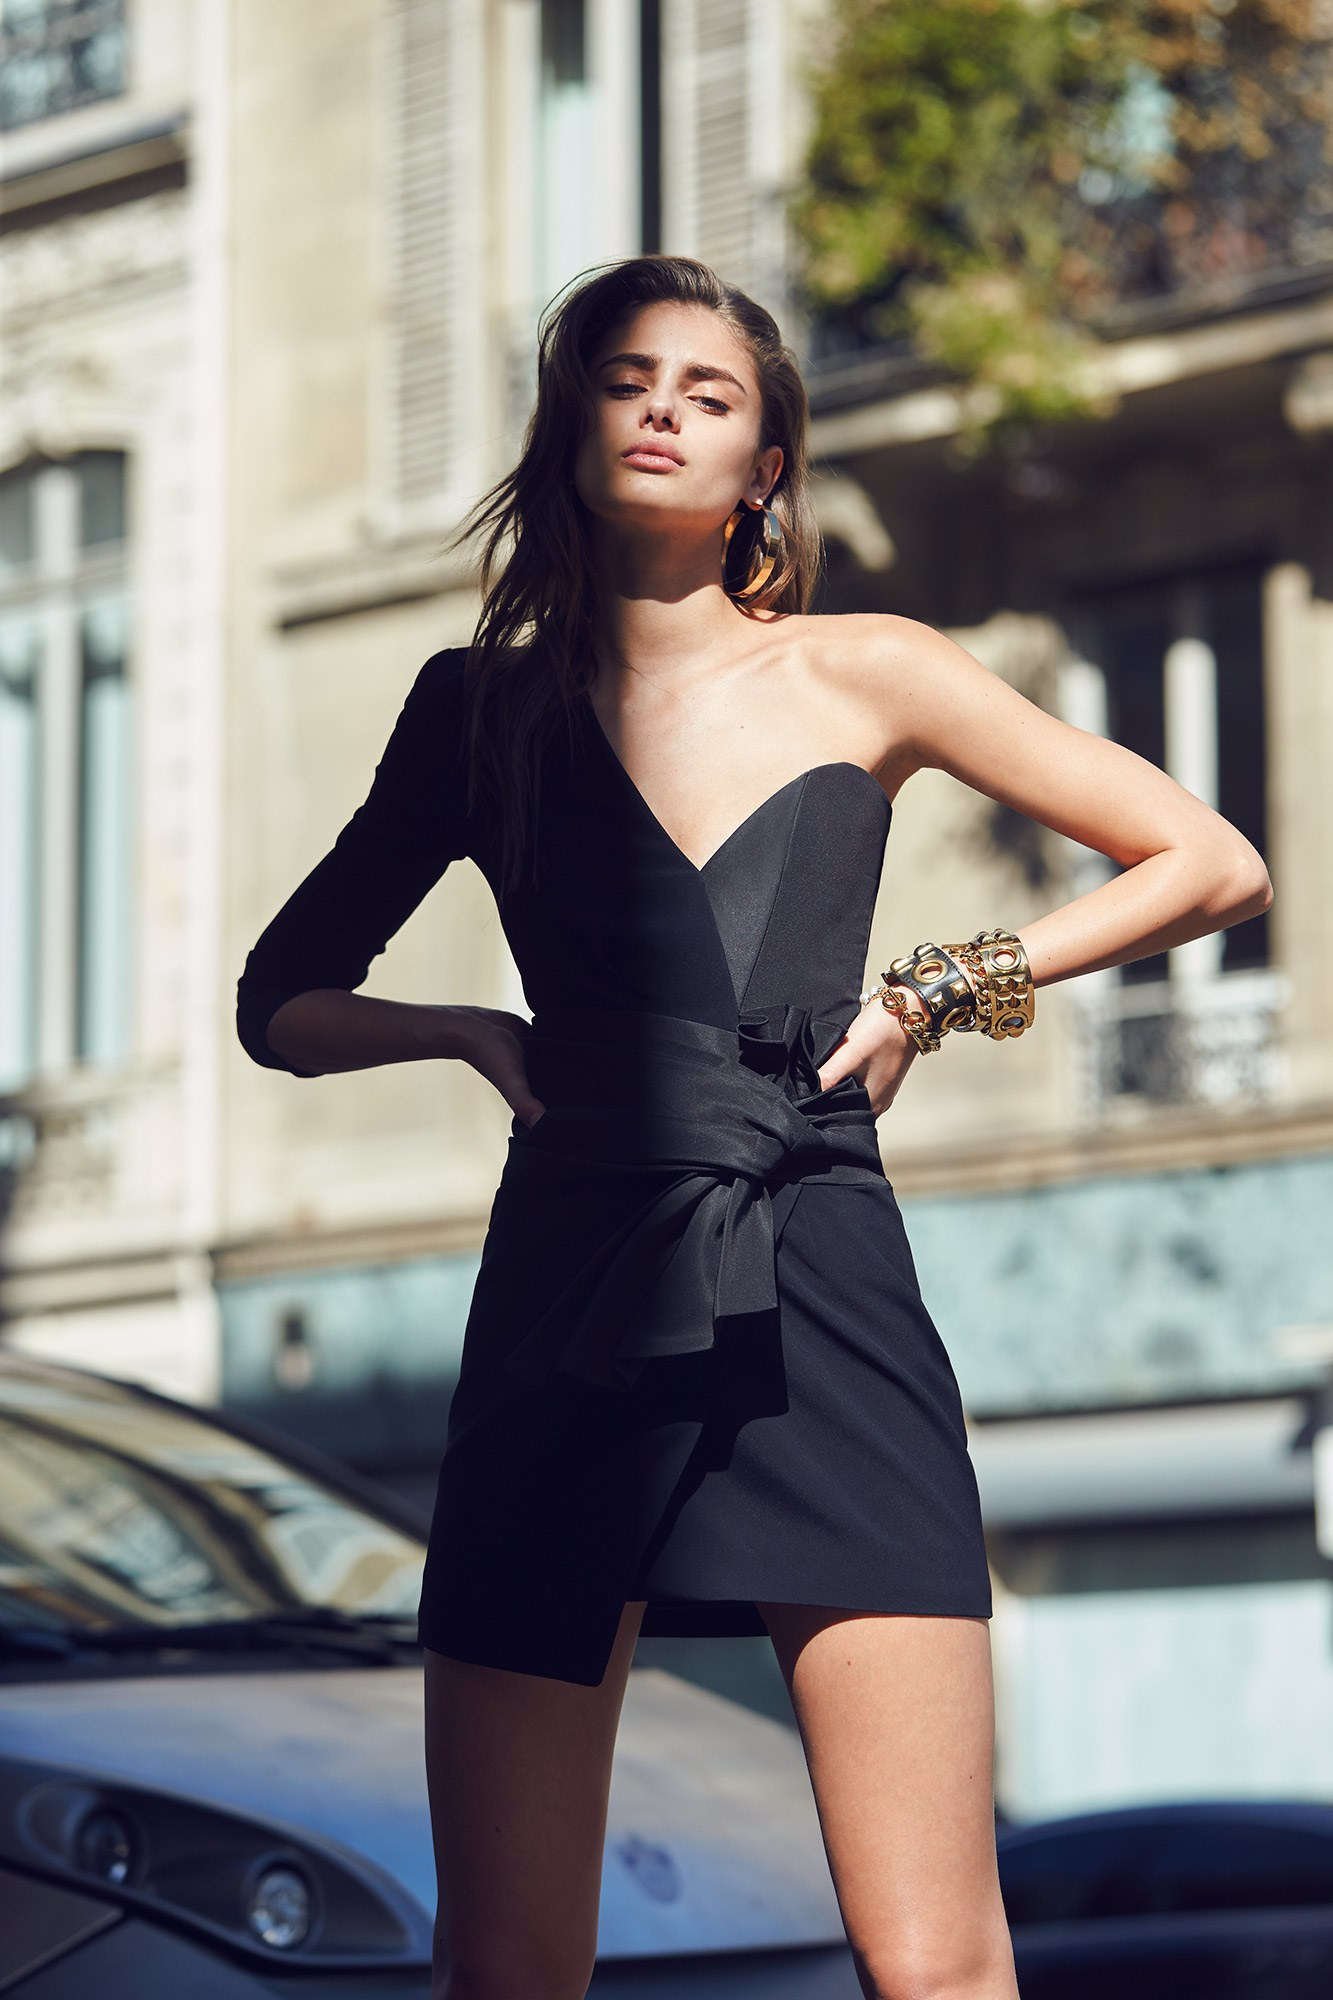 | Projets de LeviSmith | - Page 4 Alexandre-vauthier-rtw-spring-summer-2017-lookbook-taylor-hill-by-david-bellemere-07